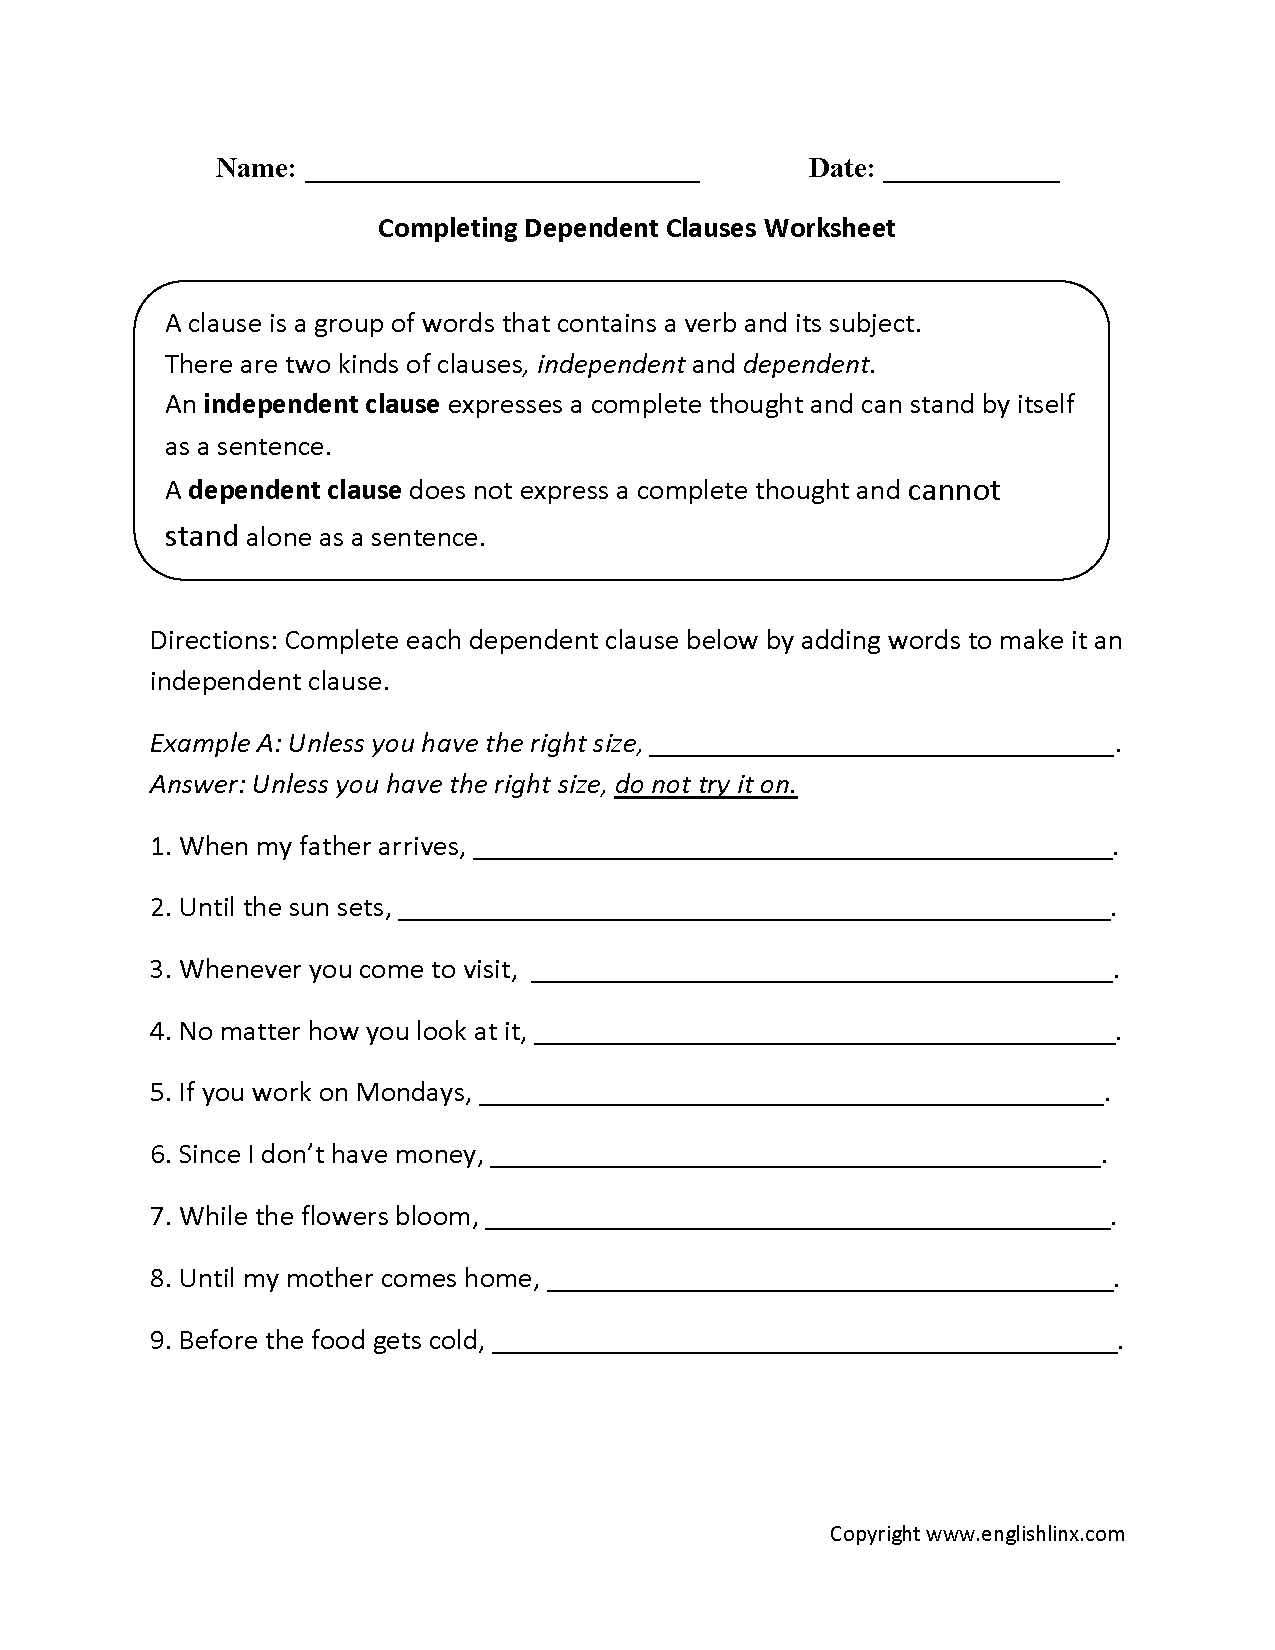 Worksheets Independent Clause Worksheet englishlinx com clauses worksheets completing dependent worksheet